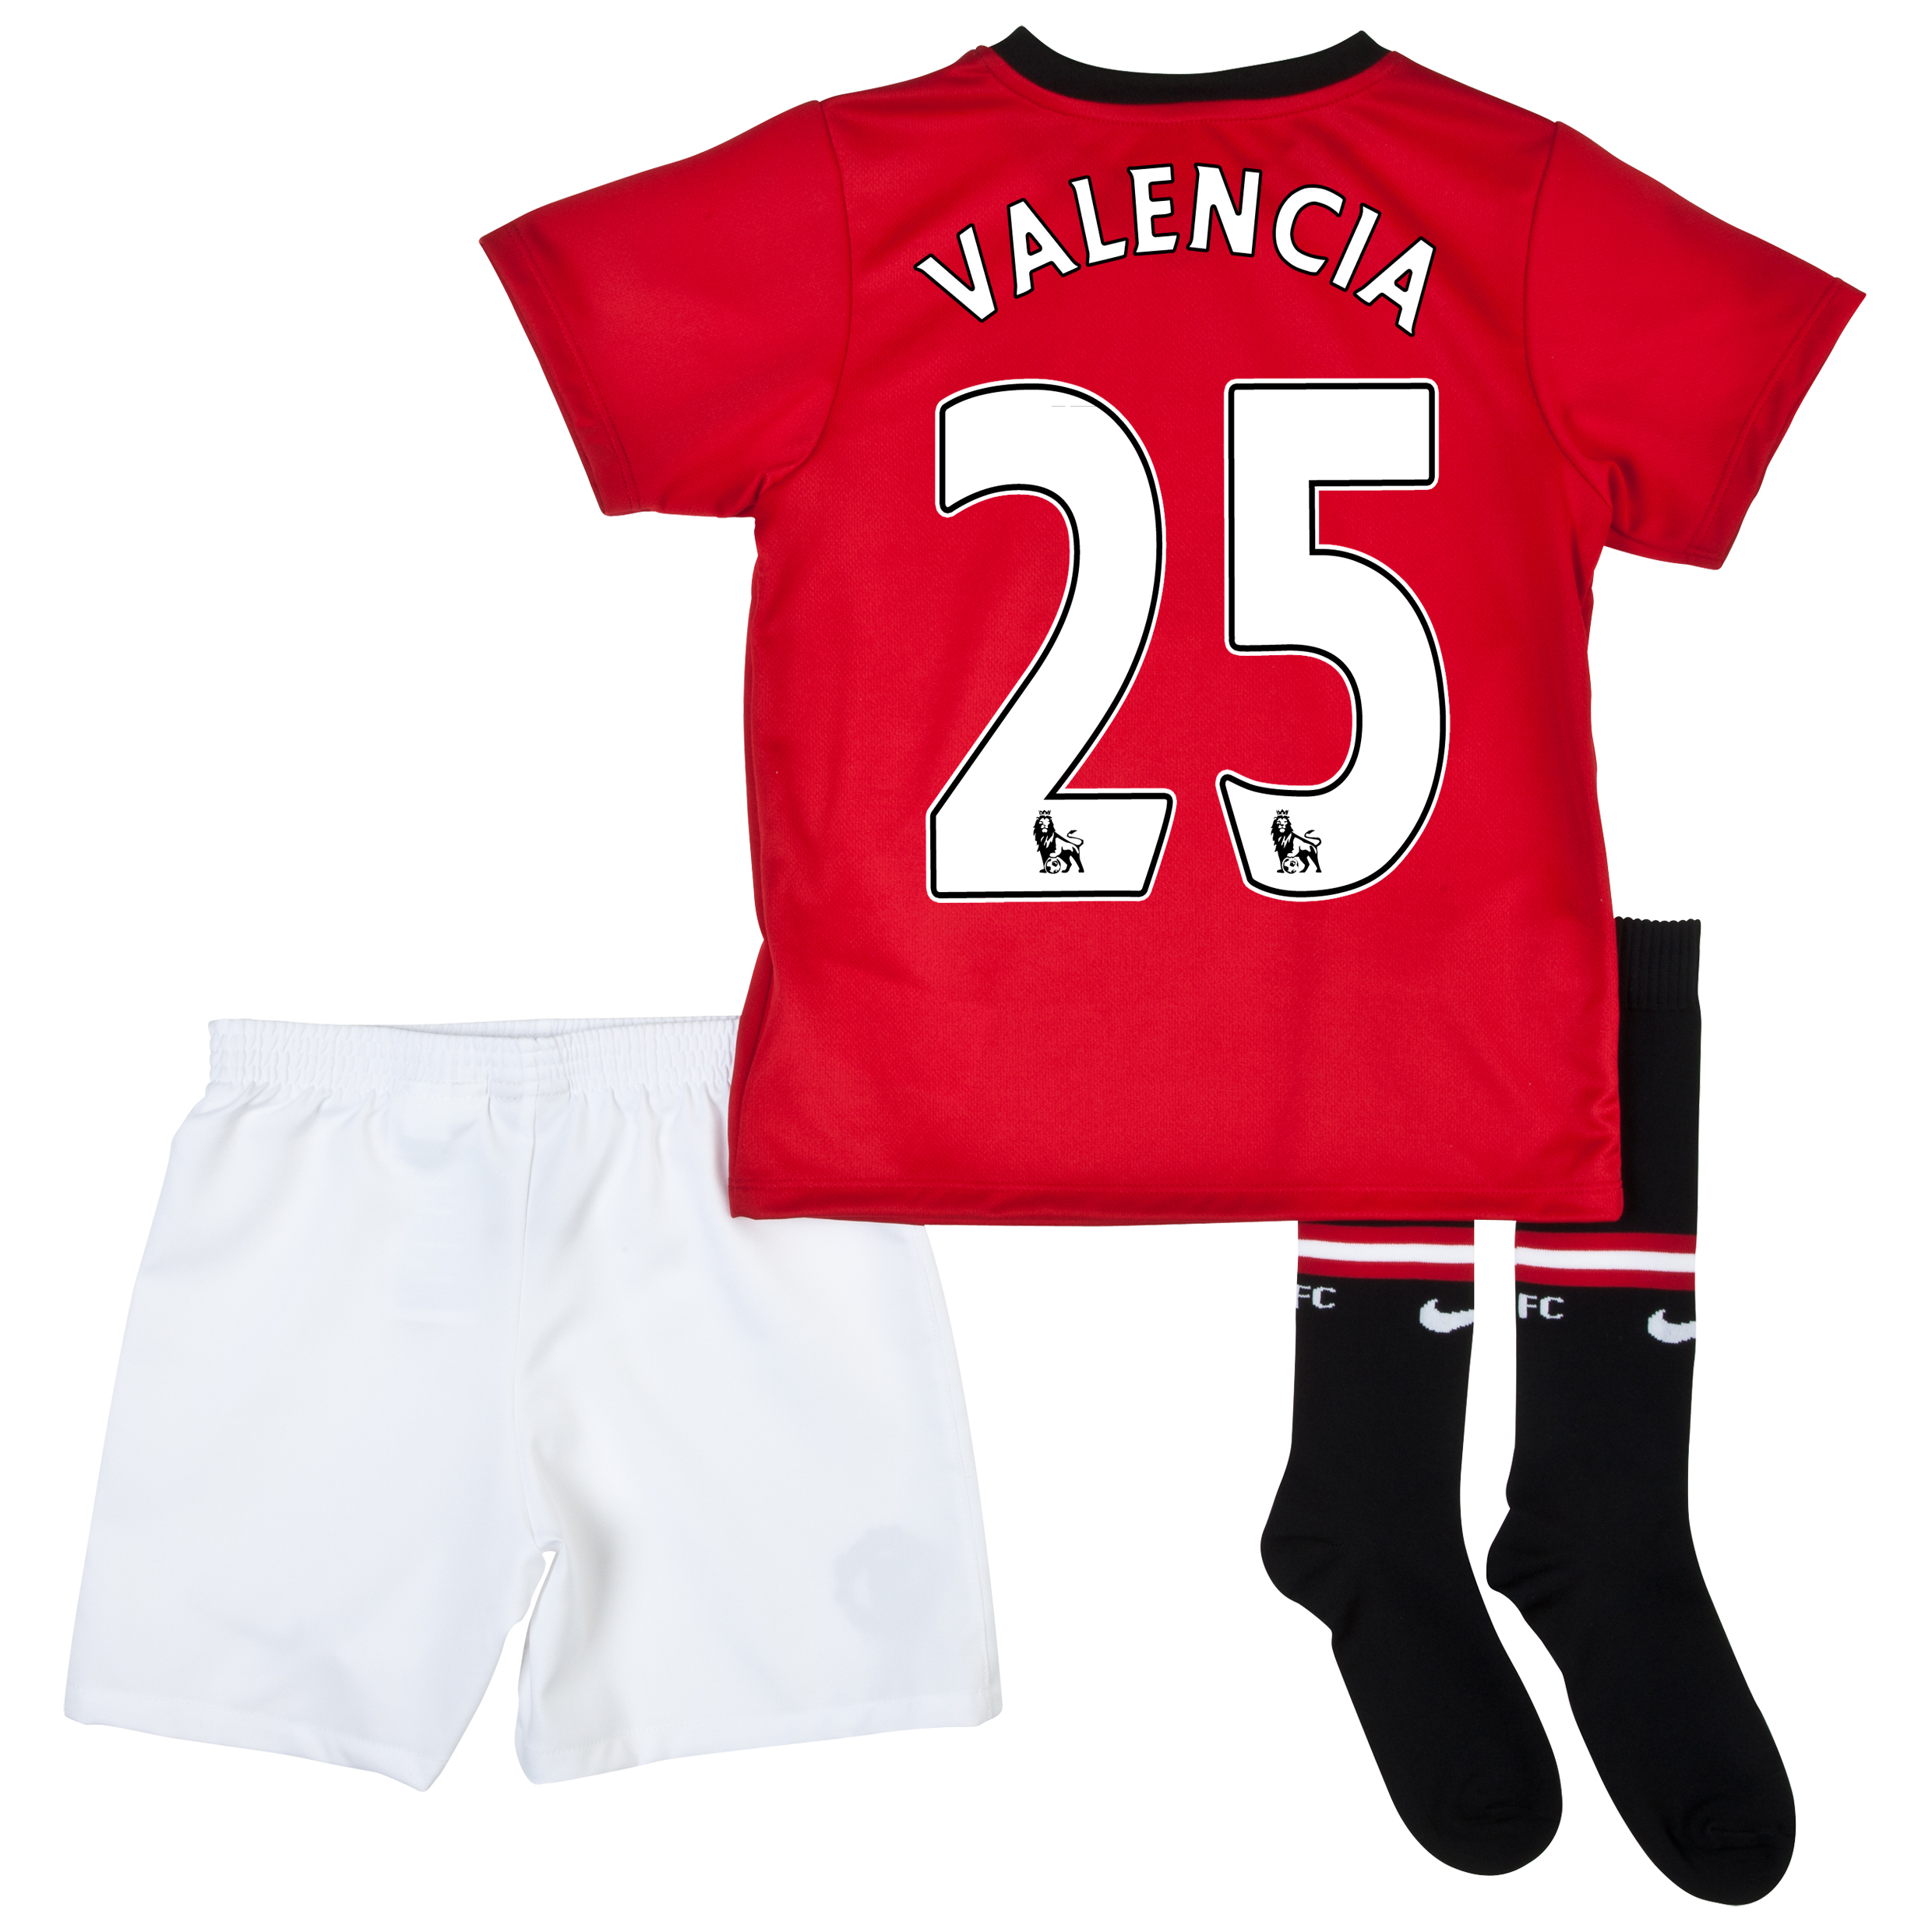 Manchester United Home Kit 2013/14 - Little Boys with Valencia 7 printing